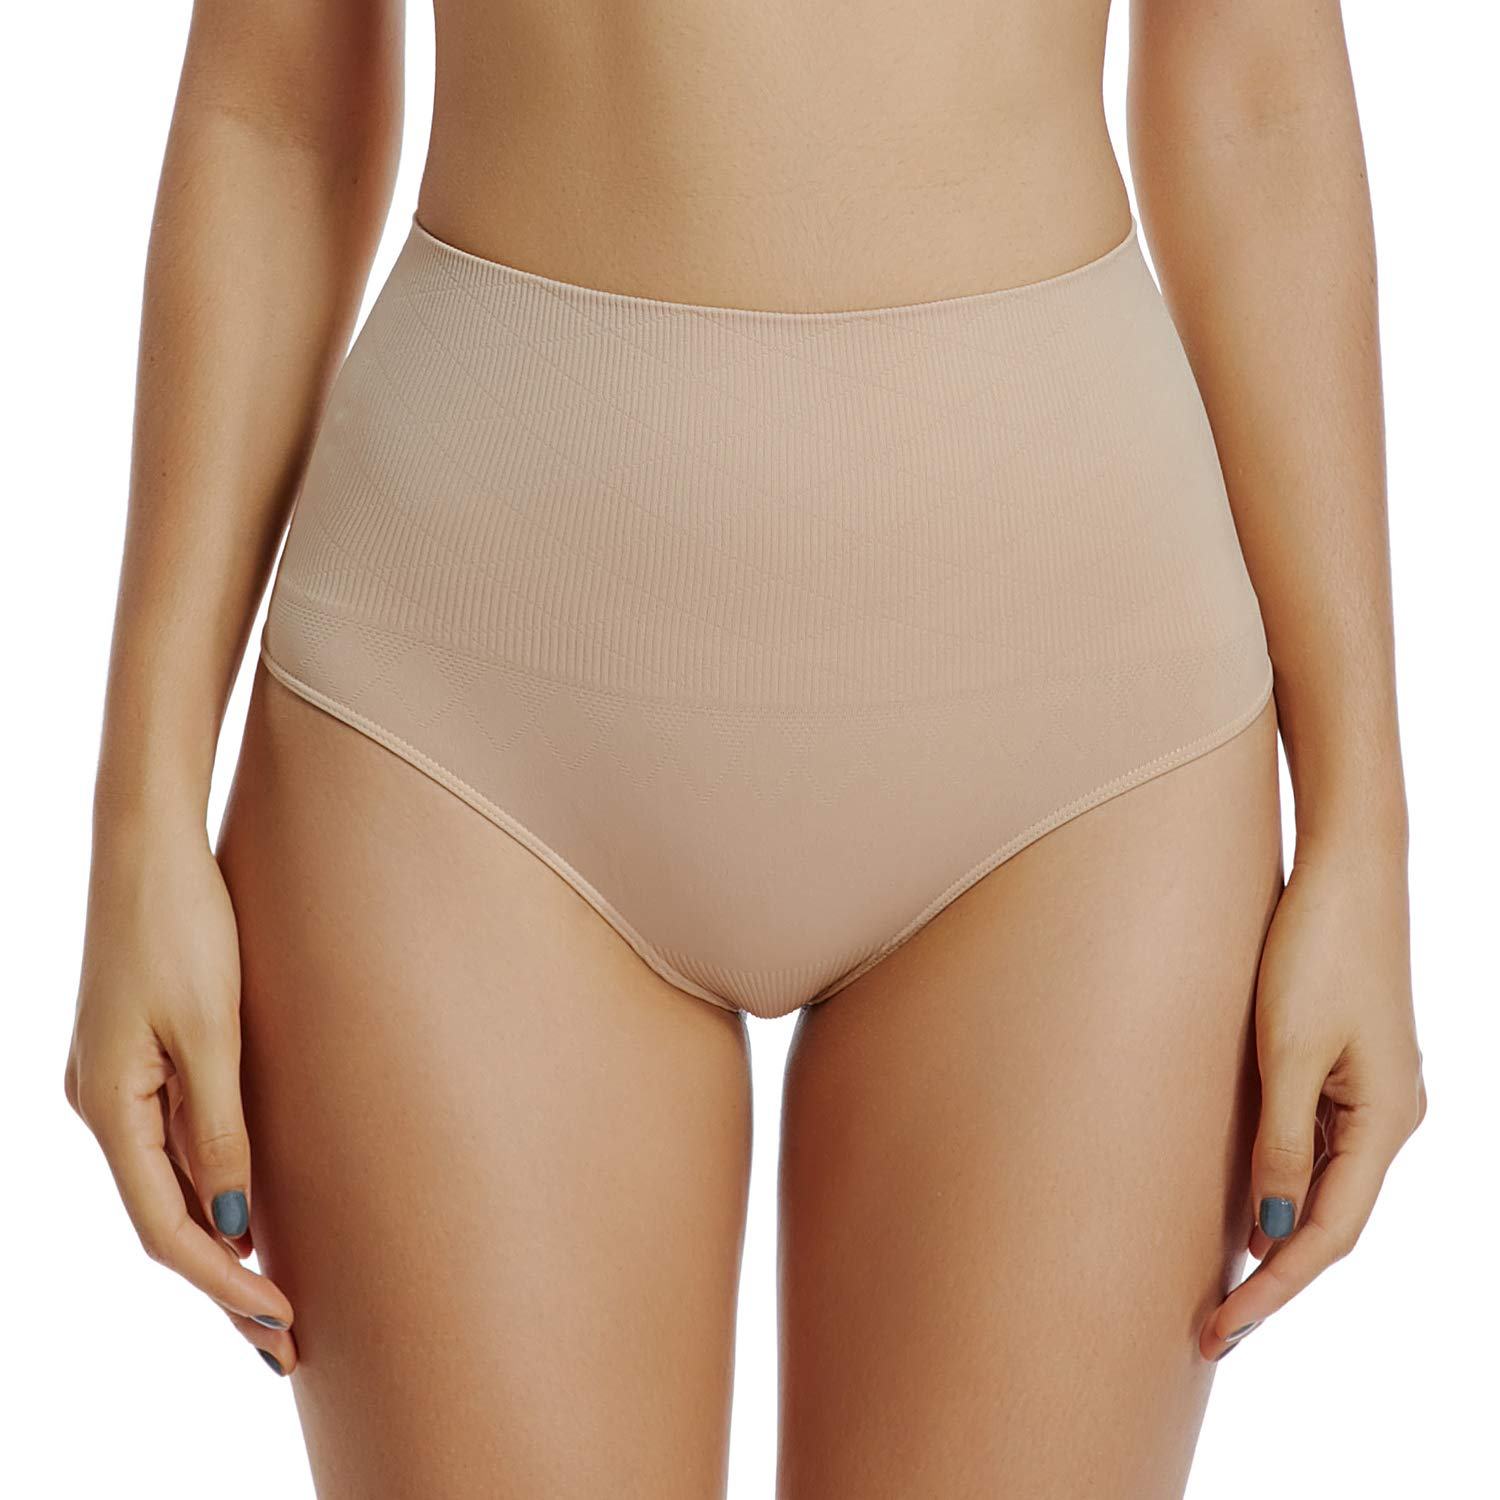 6bef333ec Thong Underwear for Women Thongs Shapewear High Waist Cincher Panty Tummy  Slimmer Sexy Panties Seamless at Amazon Women s Clothing store